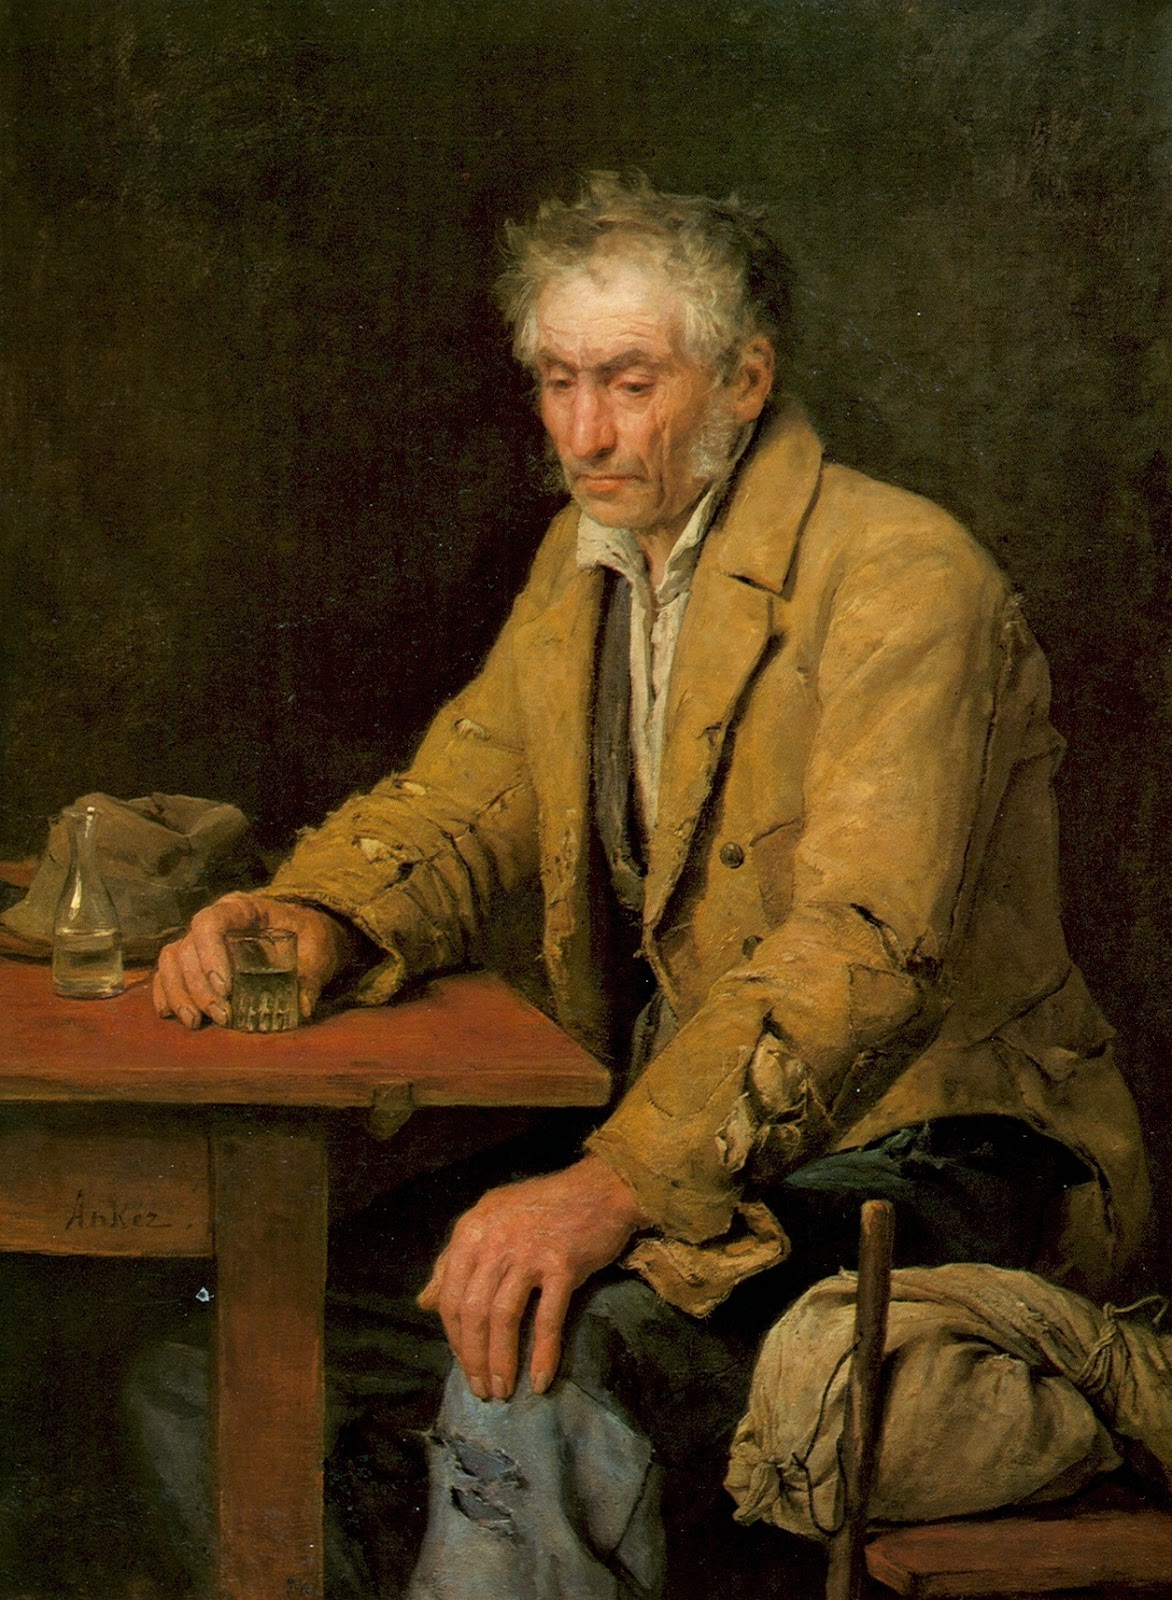 The Drinker, Albert Anker, painting review